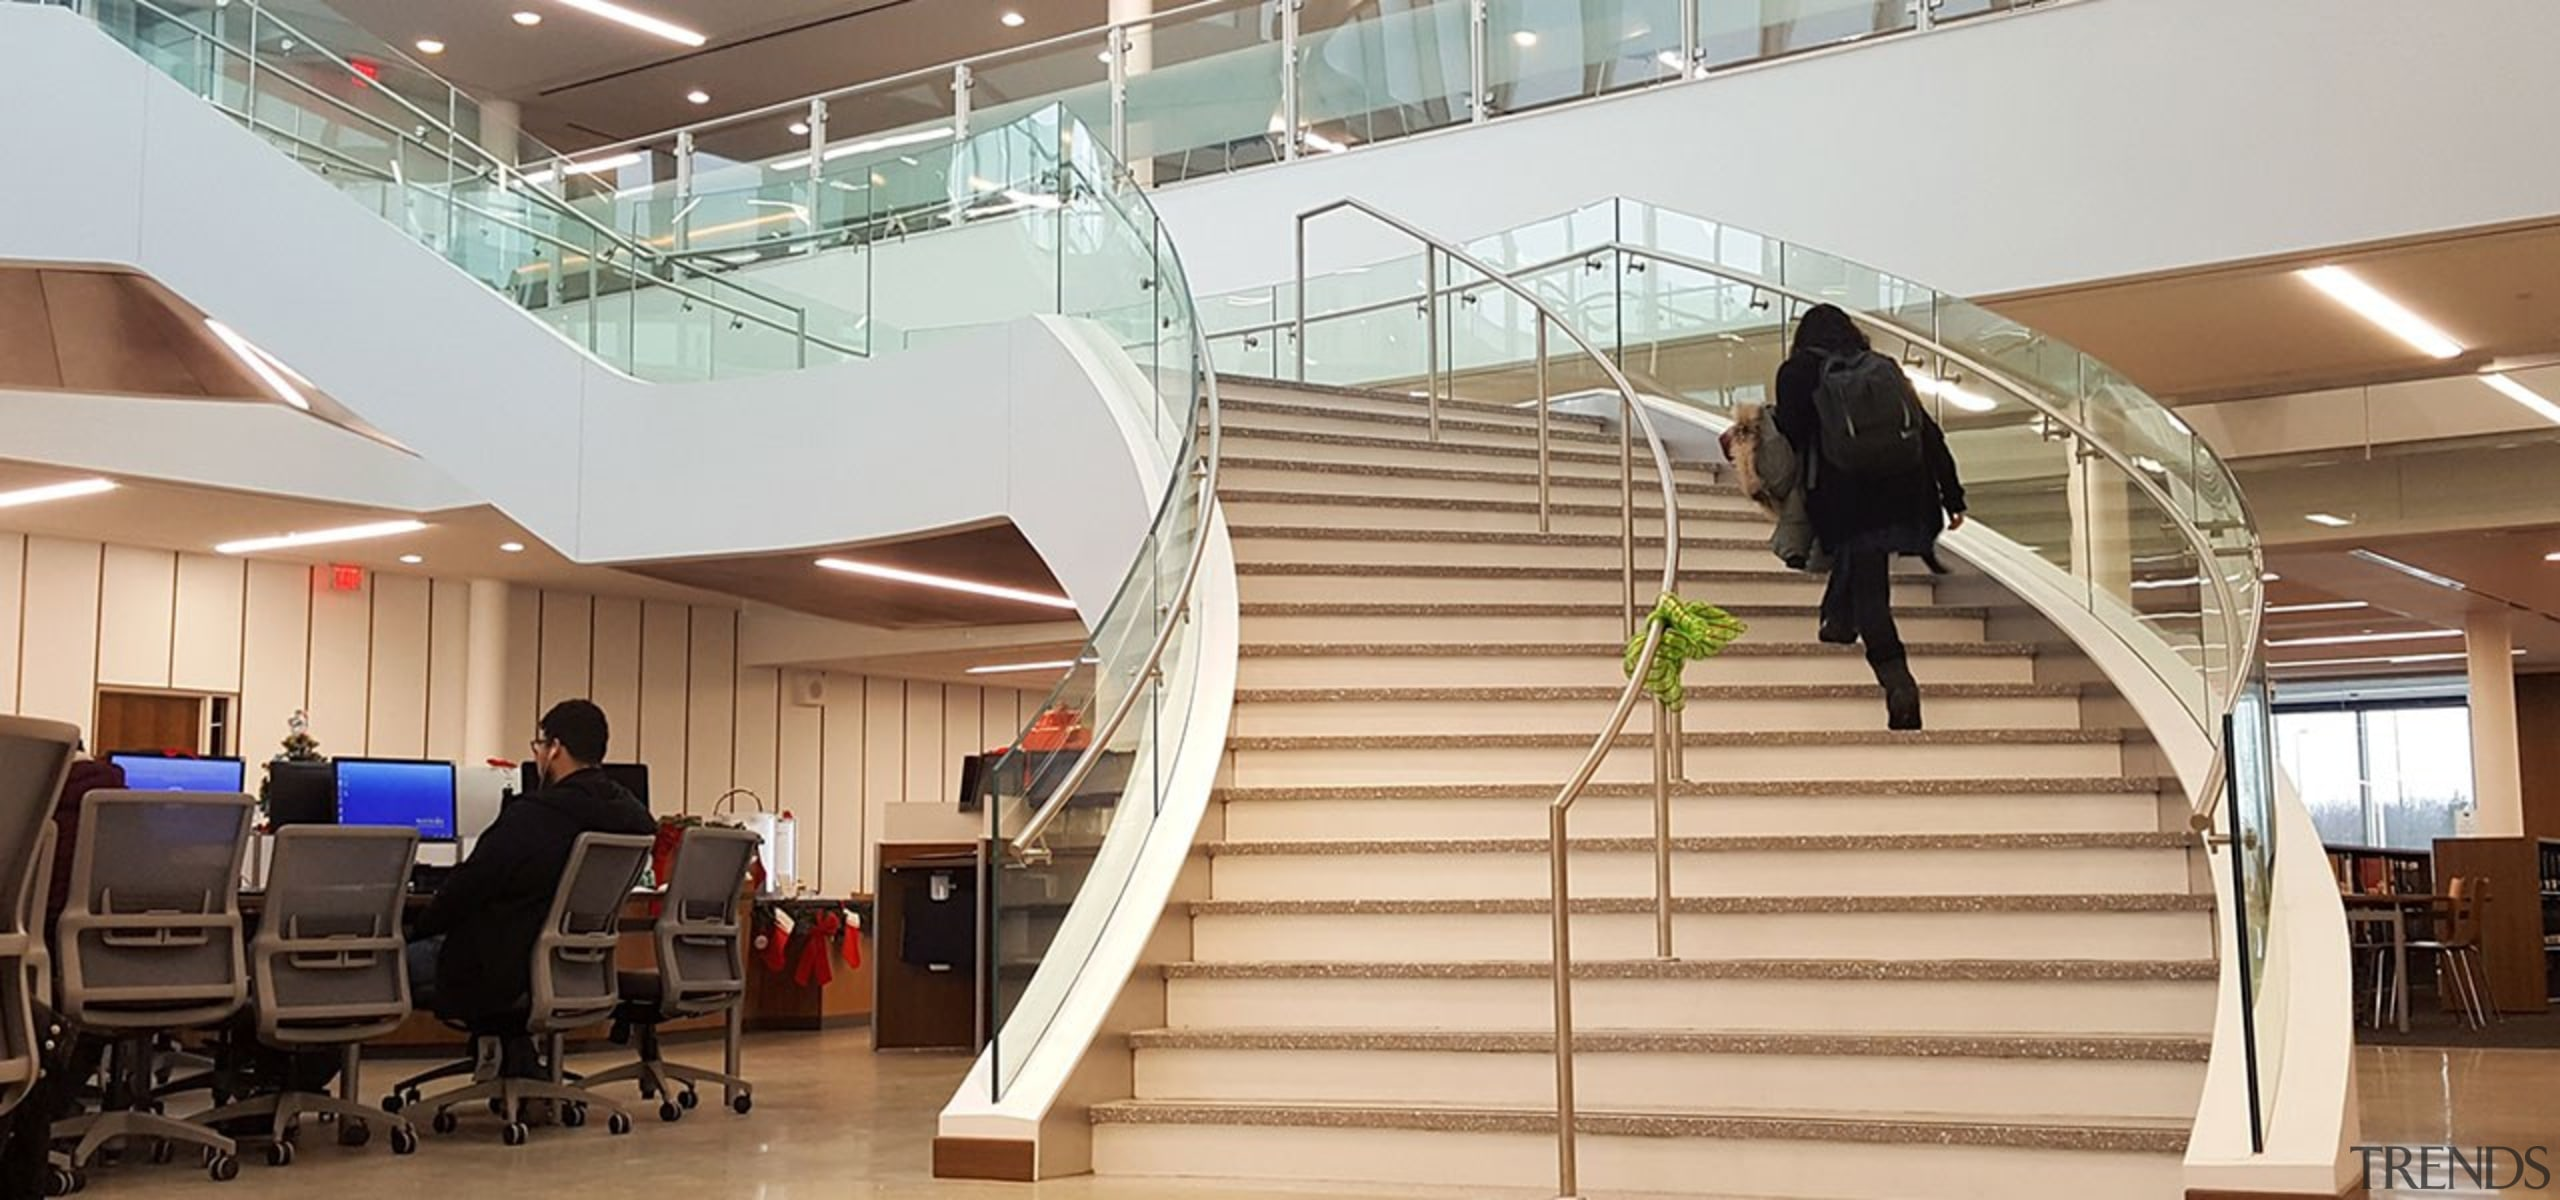 Suffolk County Community College 3 - architecture | architecture, building, daylighting, handrail, interior design, lobby, stairs, white